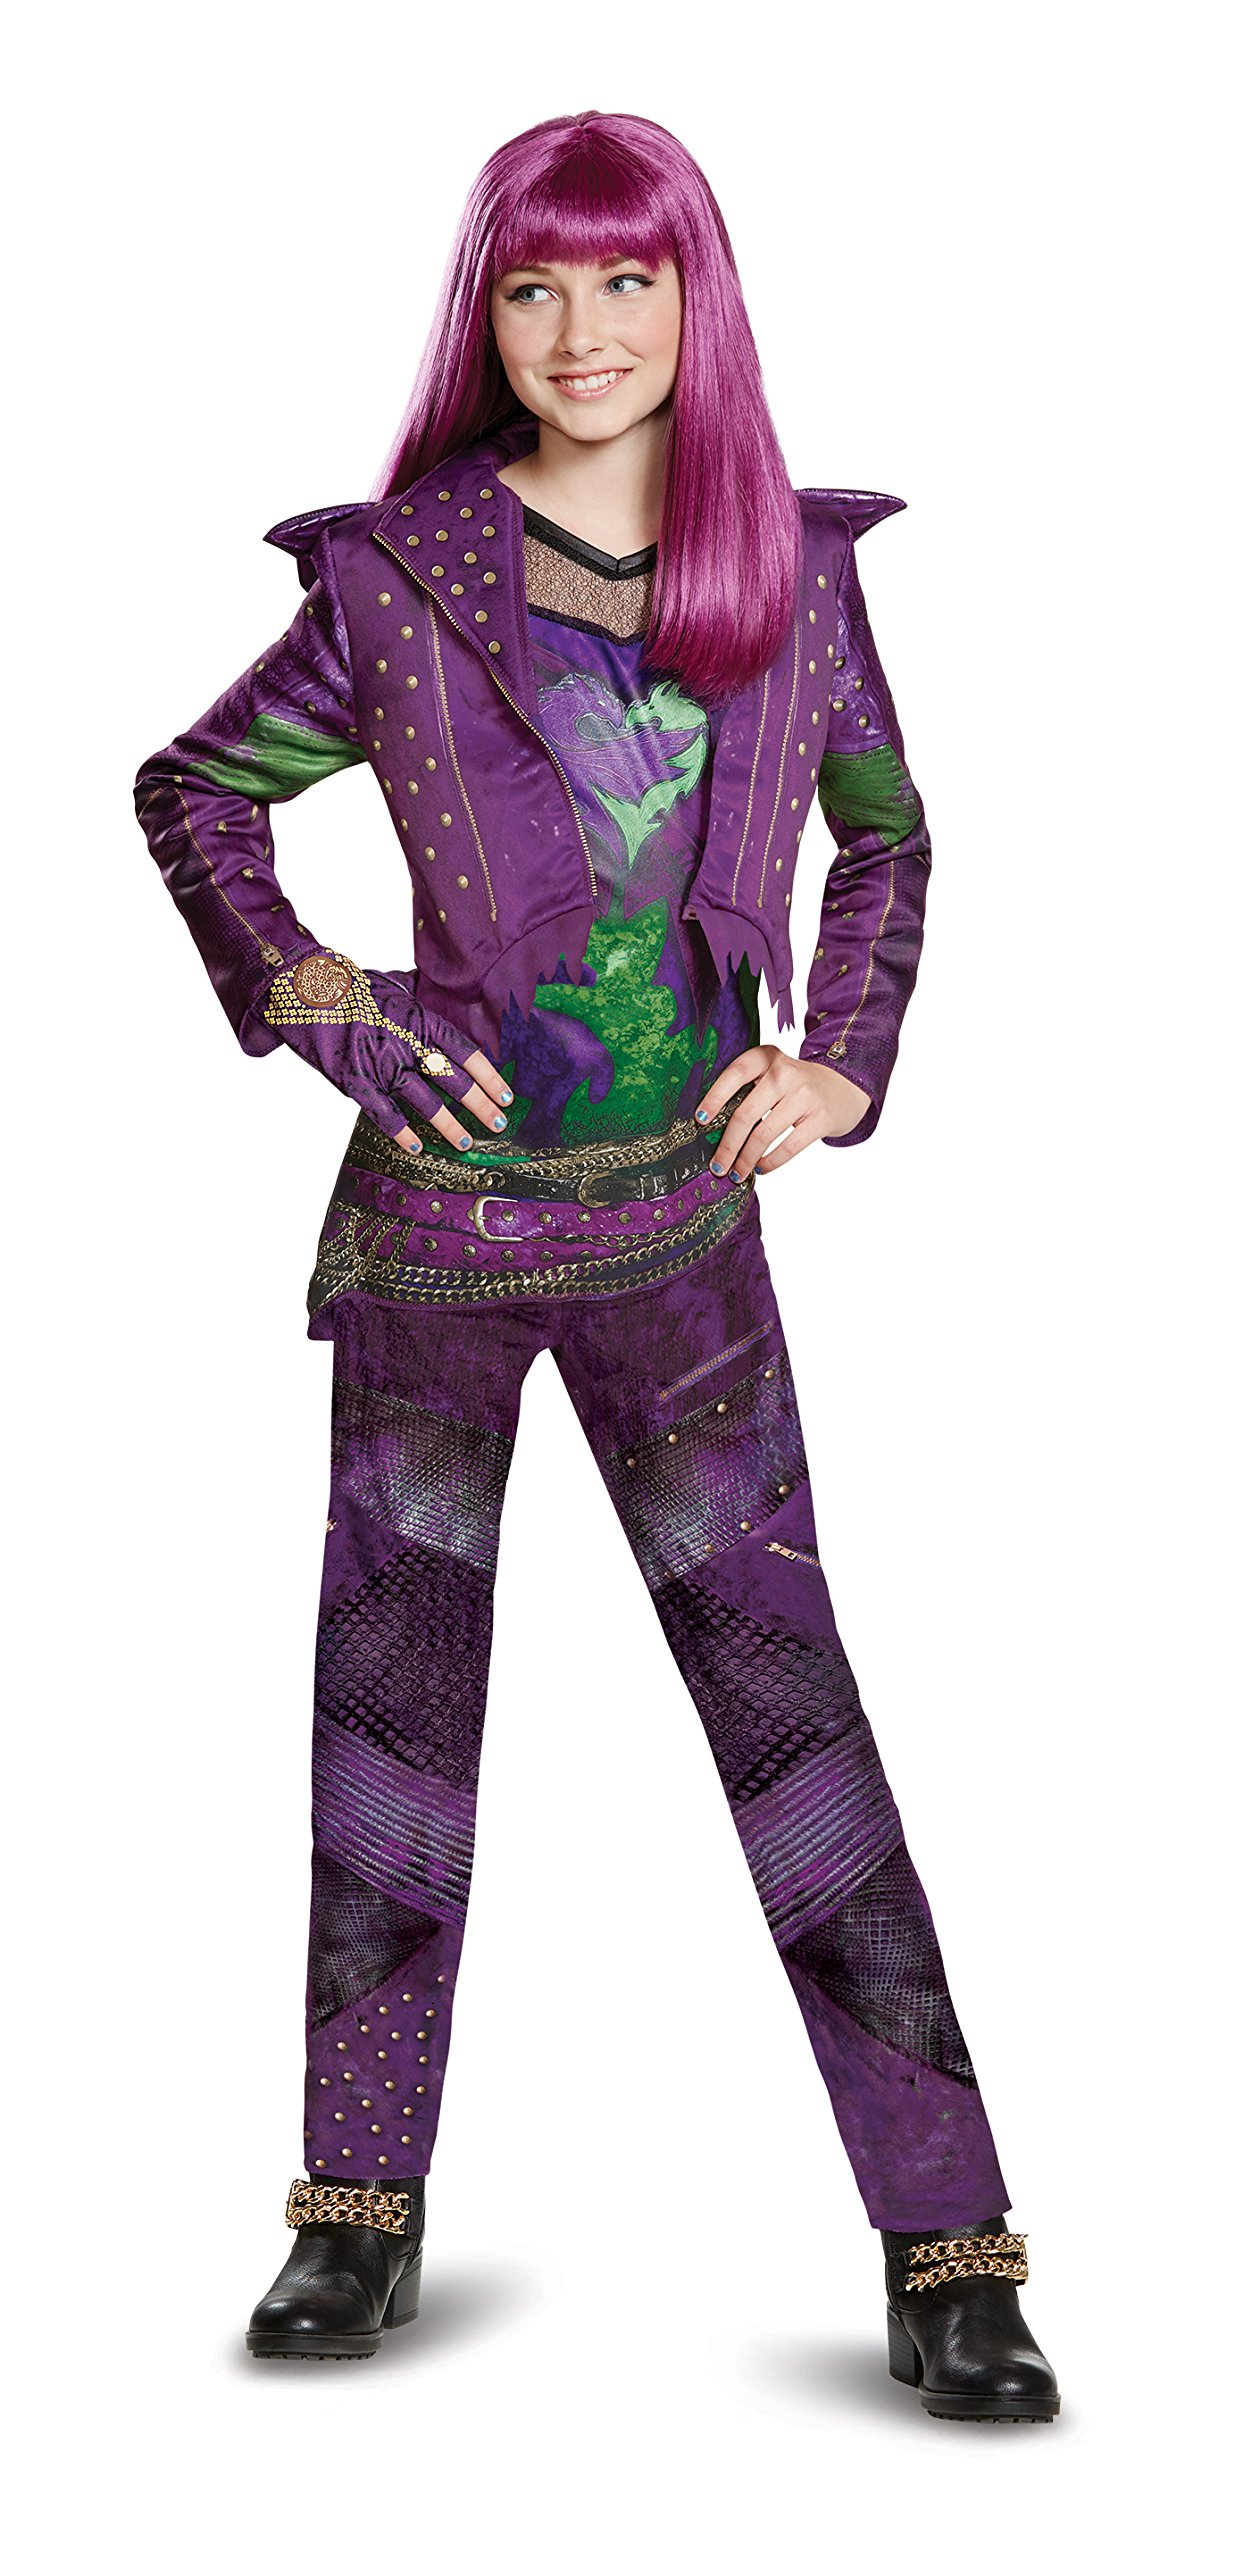 Disney Mal Deluxe Descendants 2 Costume, Purple, Large (10-12)